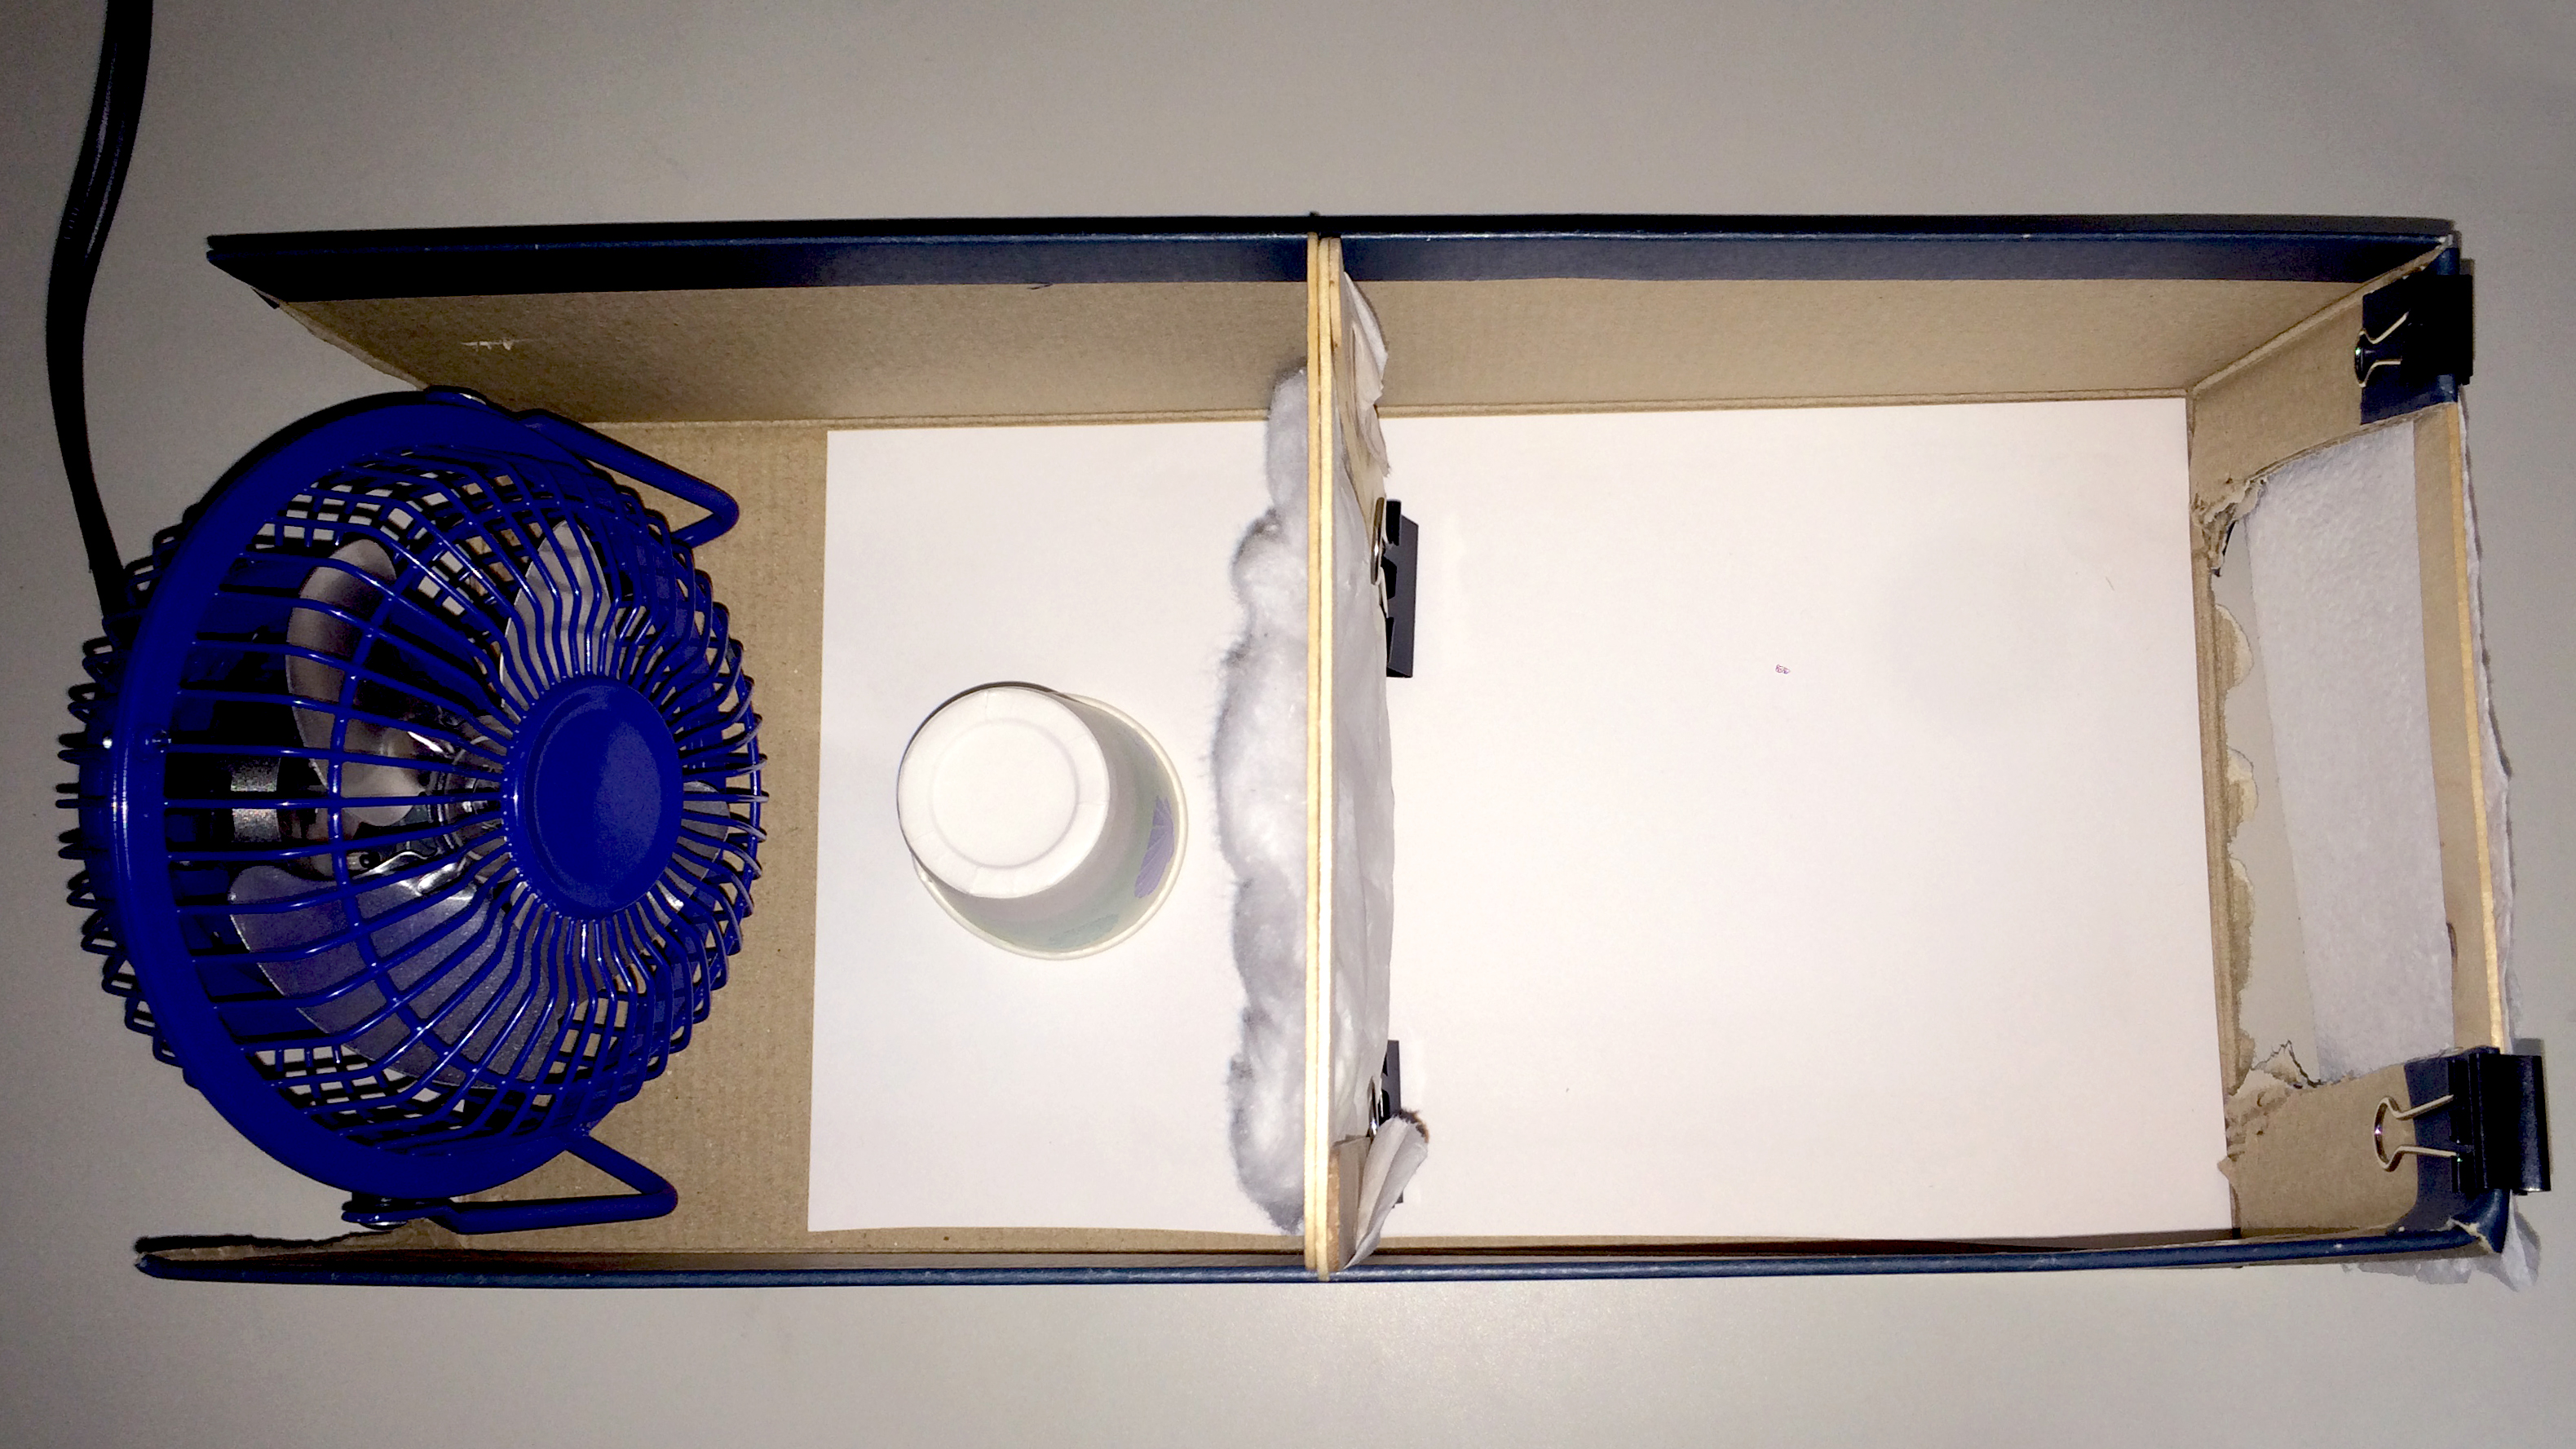 Photograph showing how to set up the testing apparatus